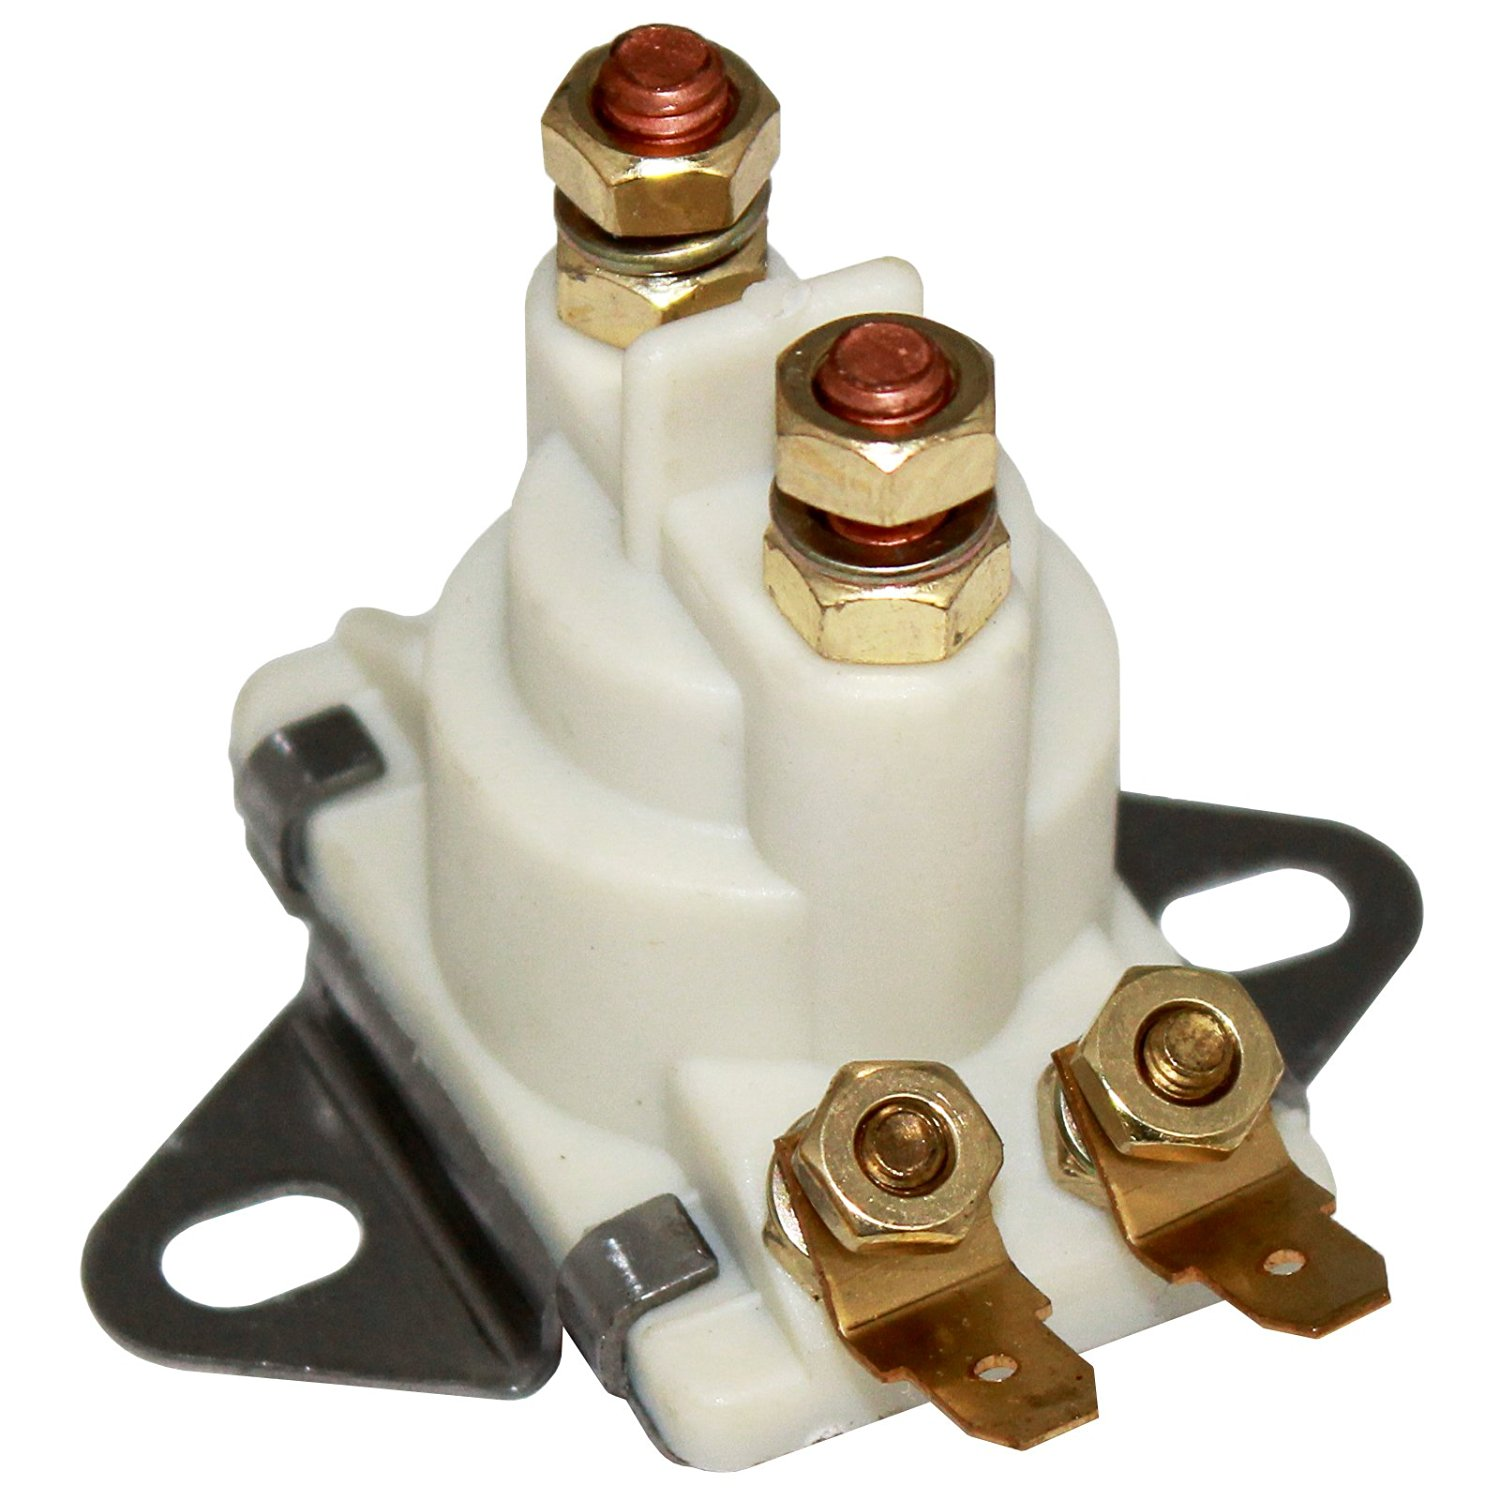 Caltric SWITCH SOLENOID Fits MERCURY OUTBOARD 150 HP 150HP 150-HP ENGINE 1990 1991